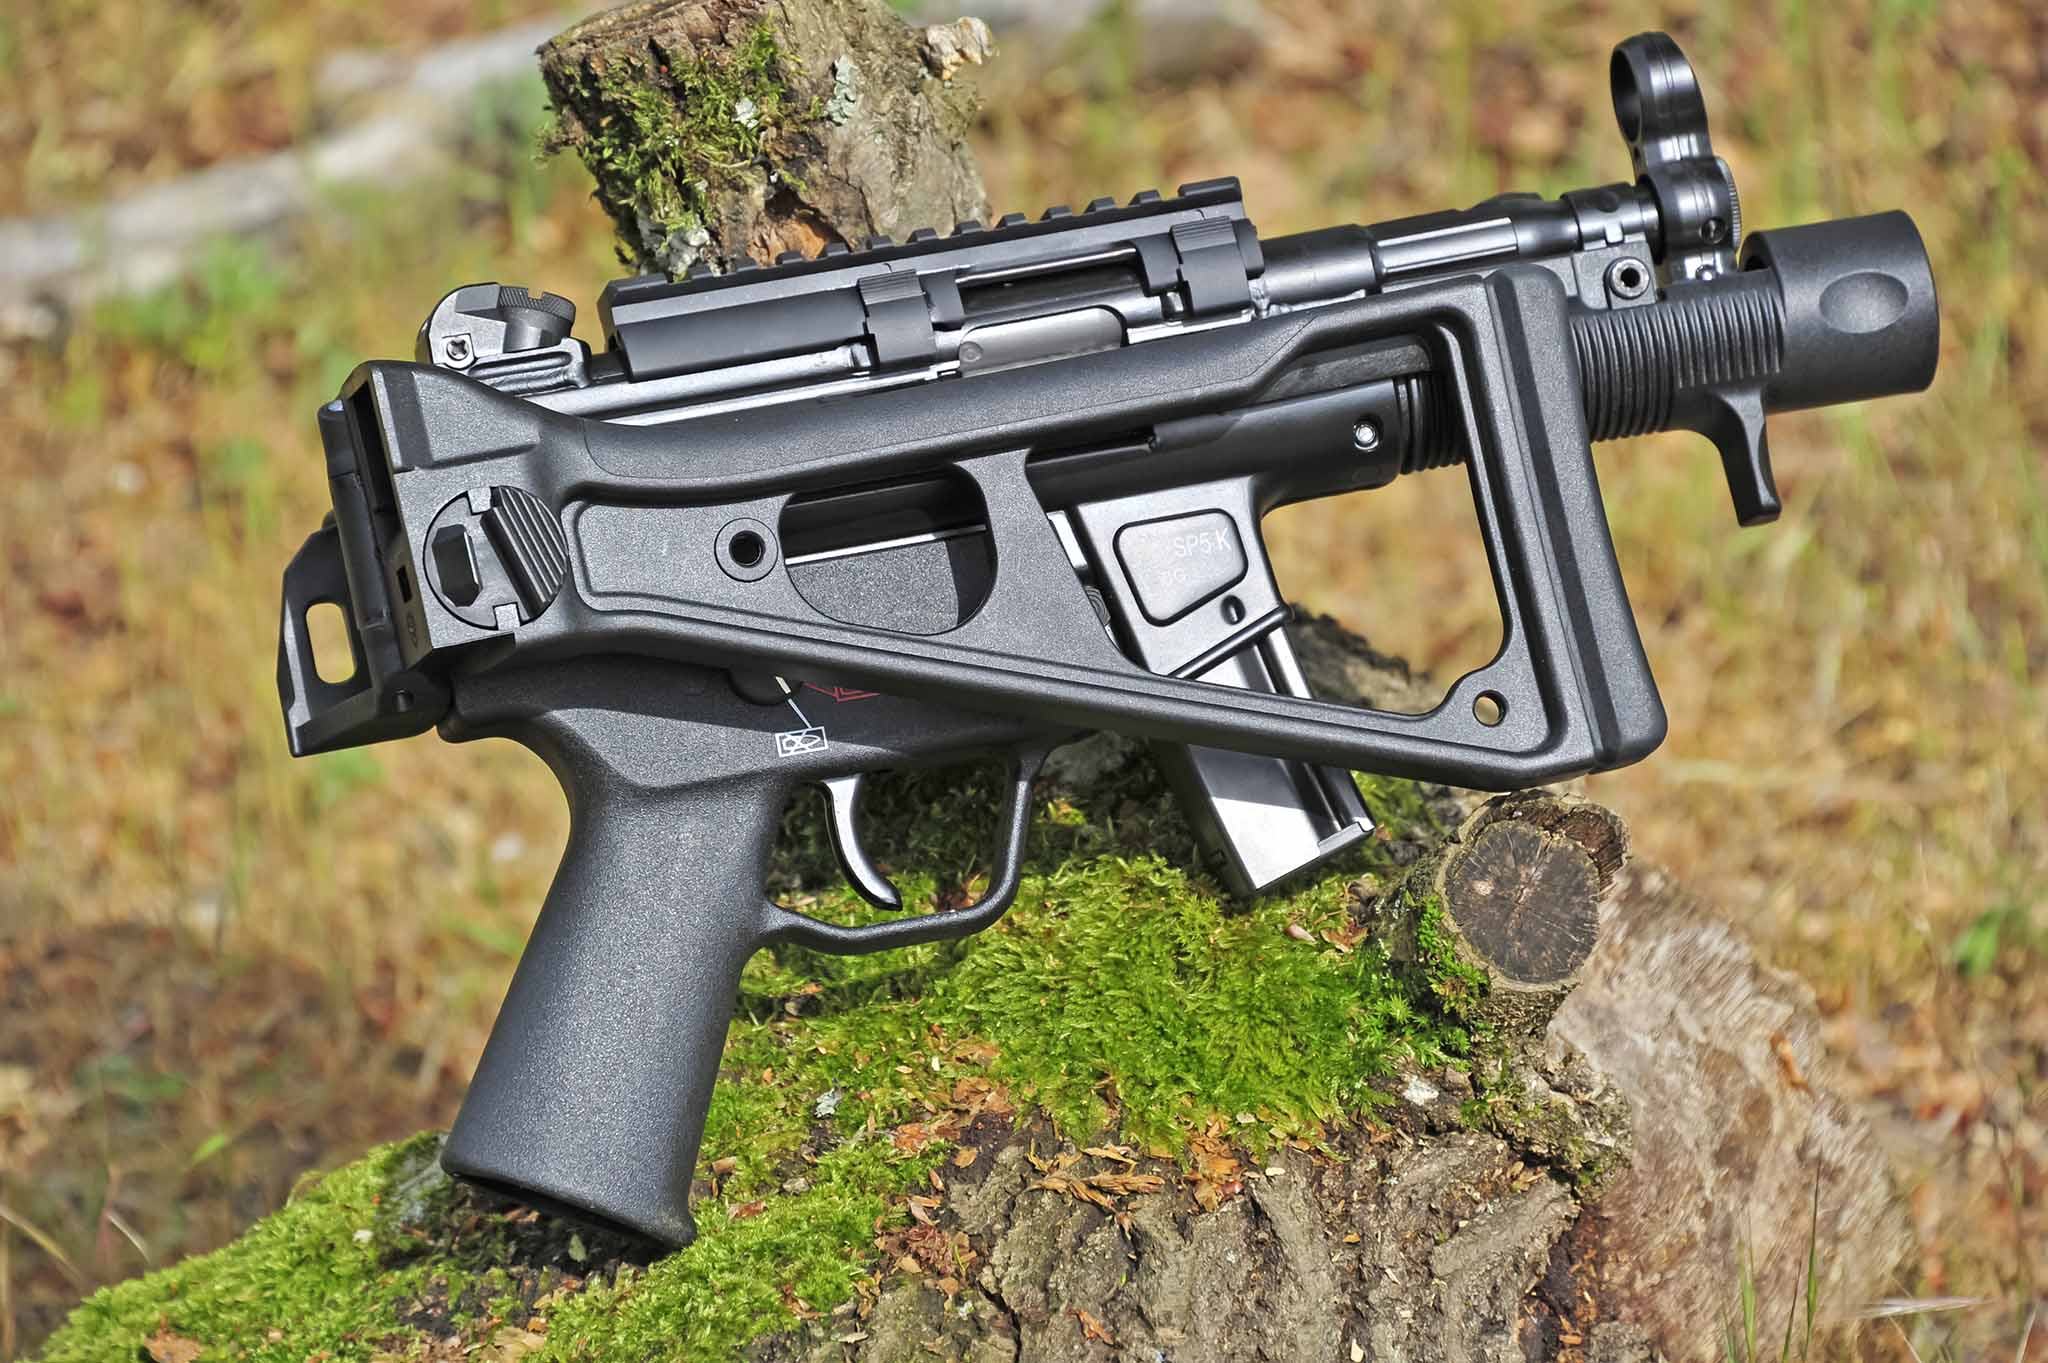 Right side of the Heckler & Koch SP5K semi-automatic pistol, with stock folded